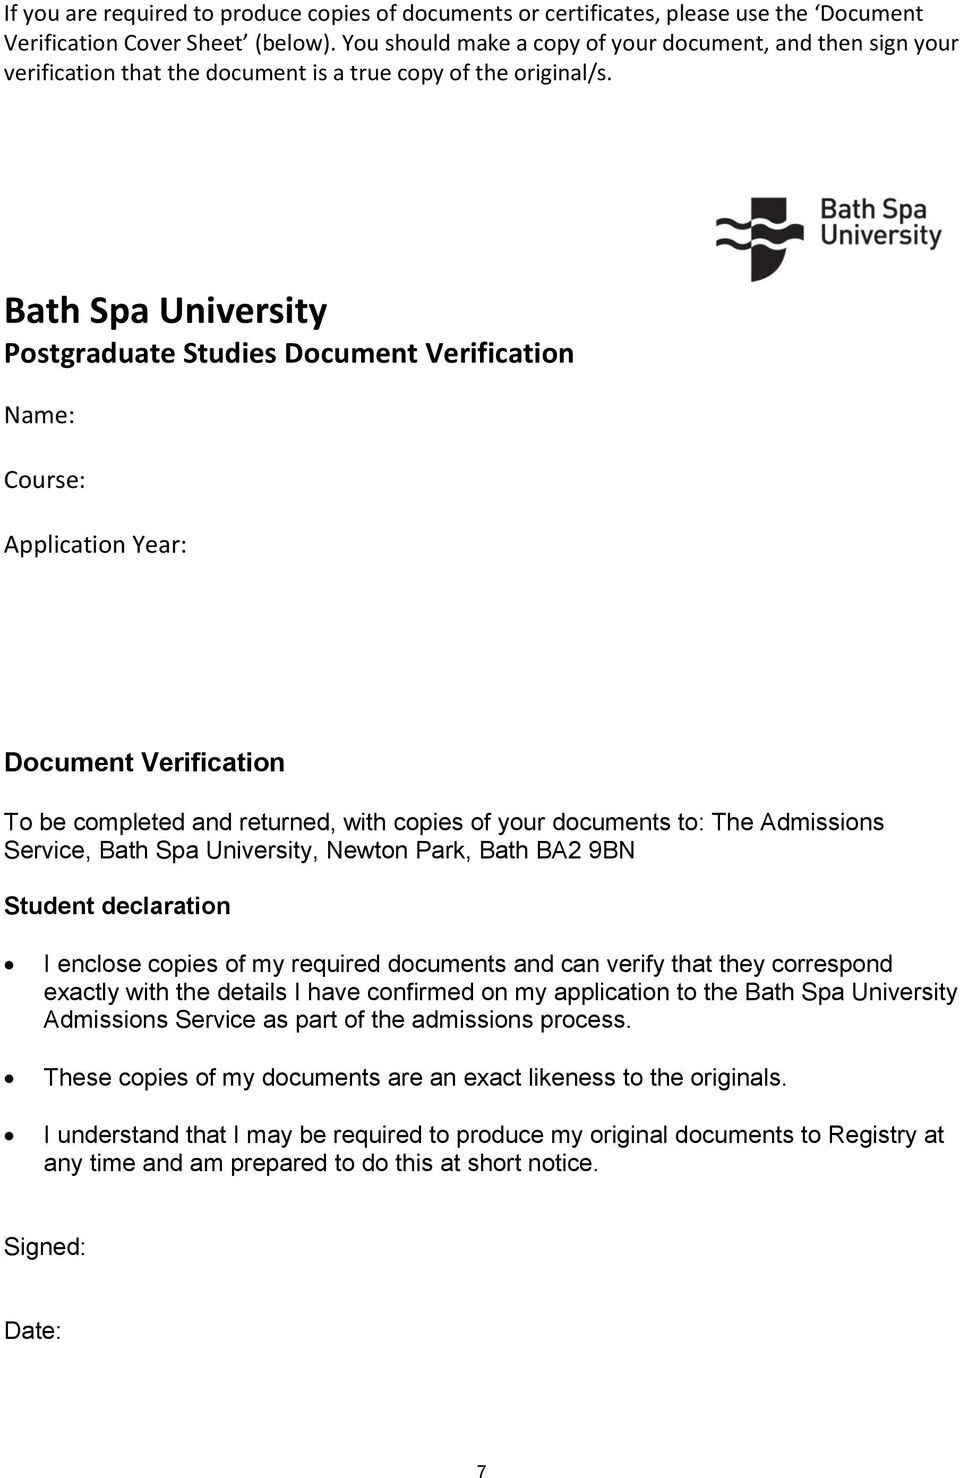 Bath Spa University Postgraduate Studies Document Verification Name: Course: Application Year: Document Verification To be completed and returned, with copies of your documents to: The Admissions